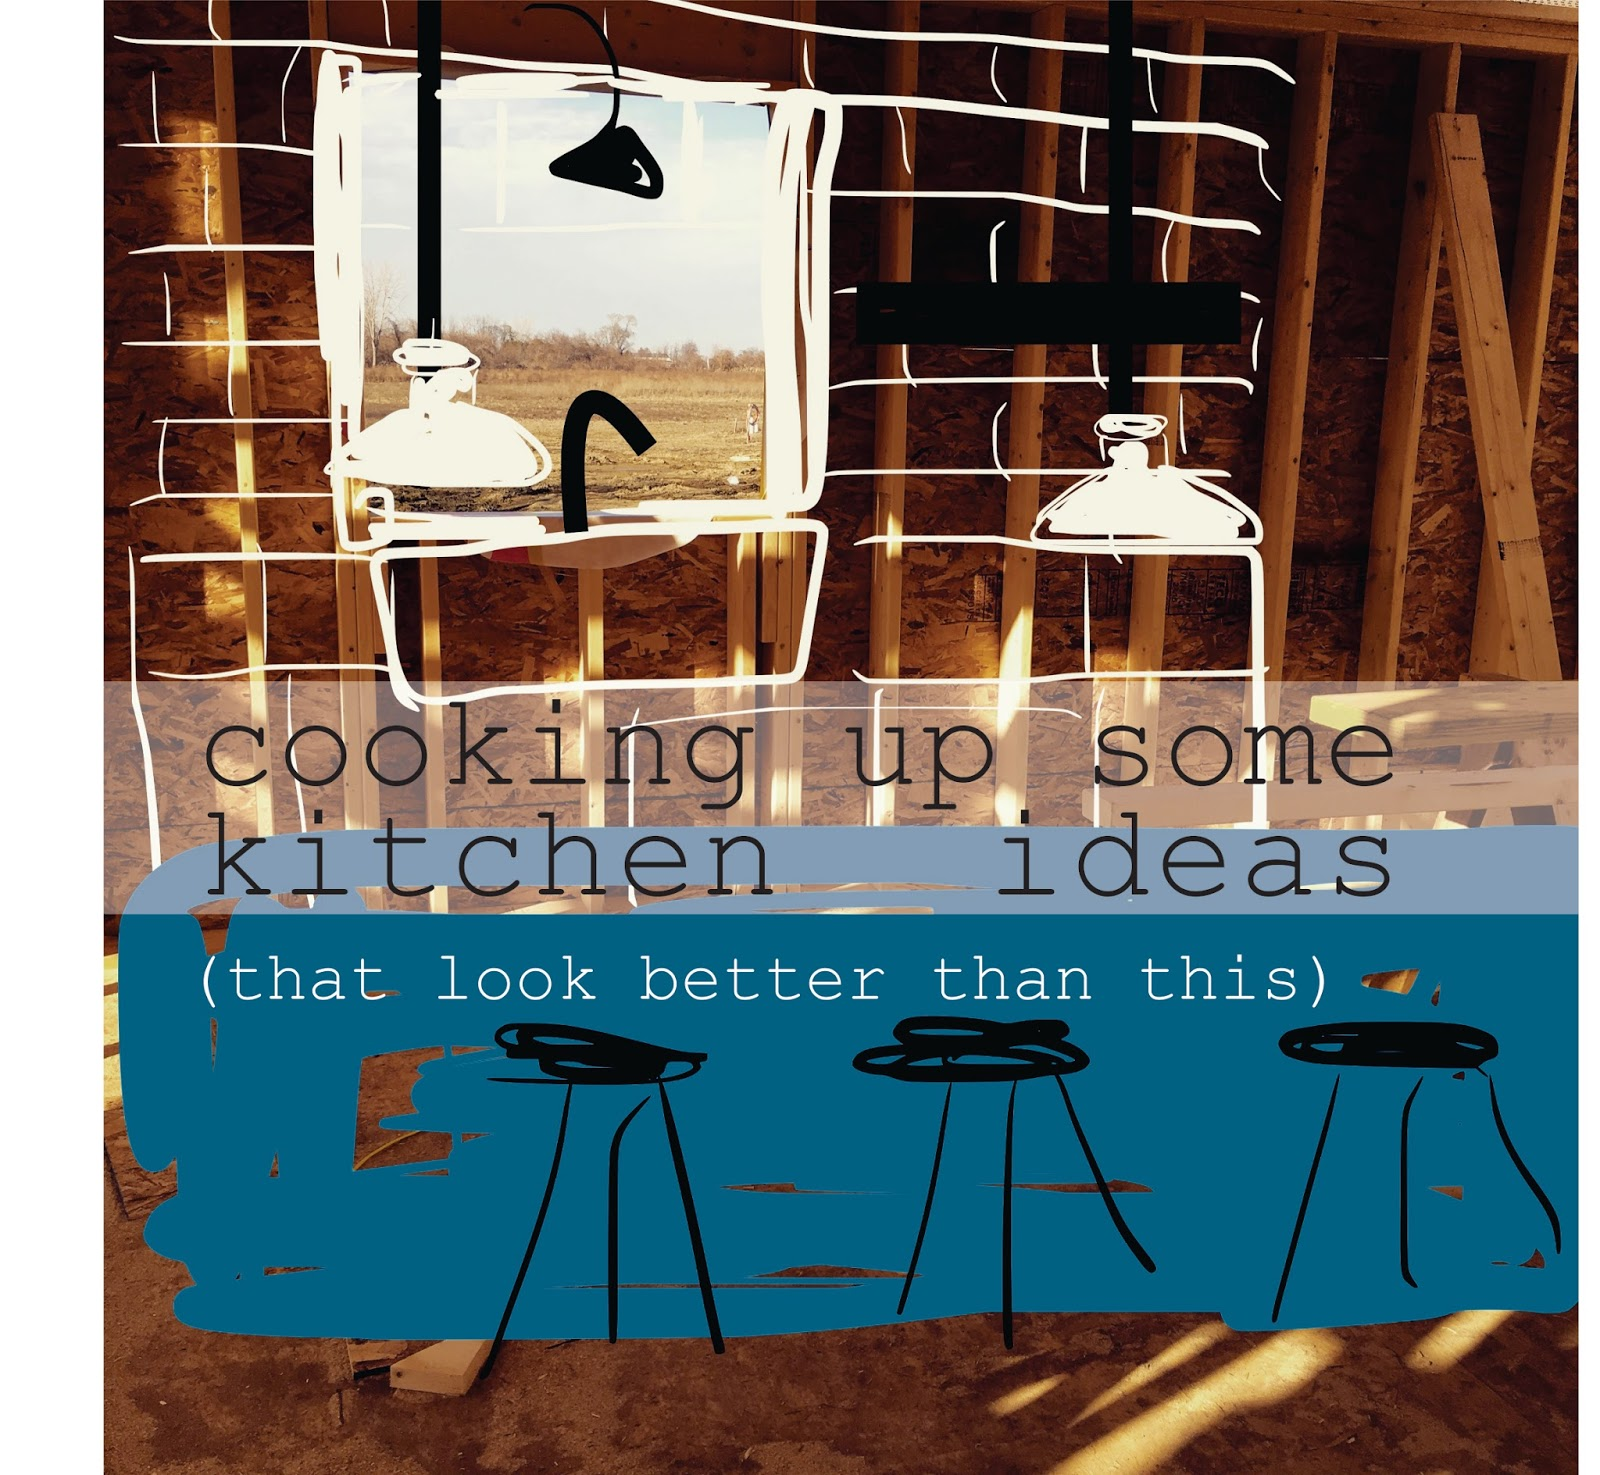 one house, 2 barns: cooking up some kitchen ideas